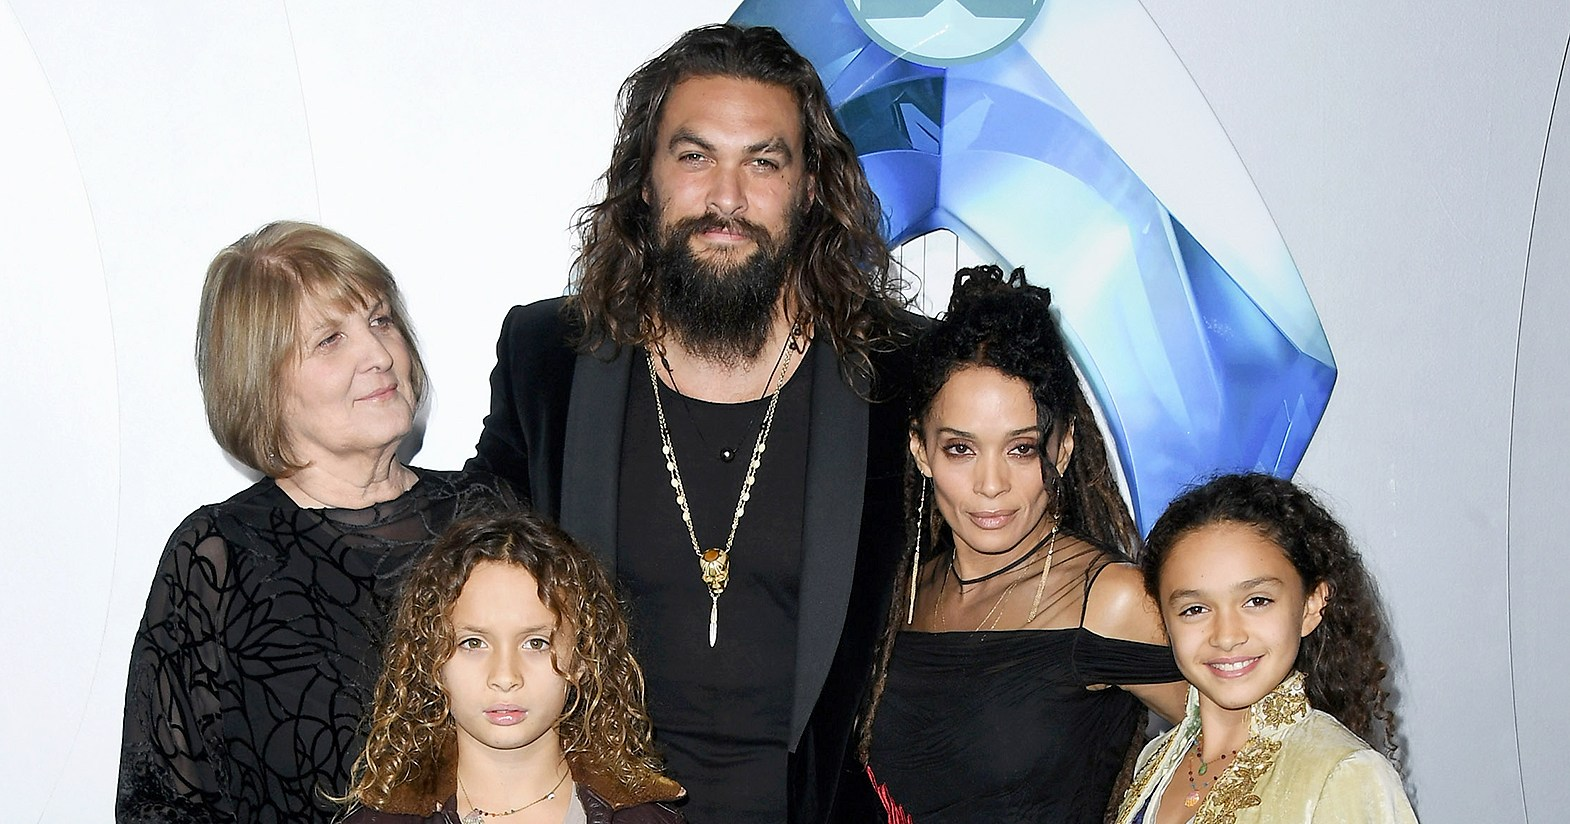 Jason Momoa Says the Best Part of Making 'Aquaman' Was Seeing His Kids' Reactions